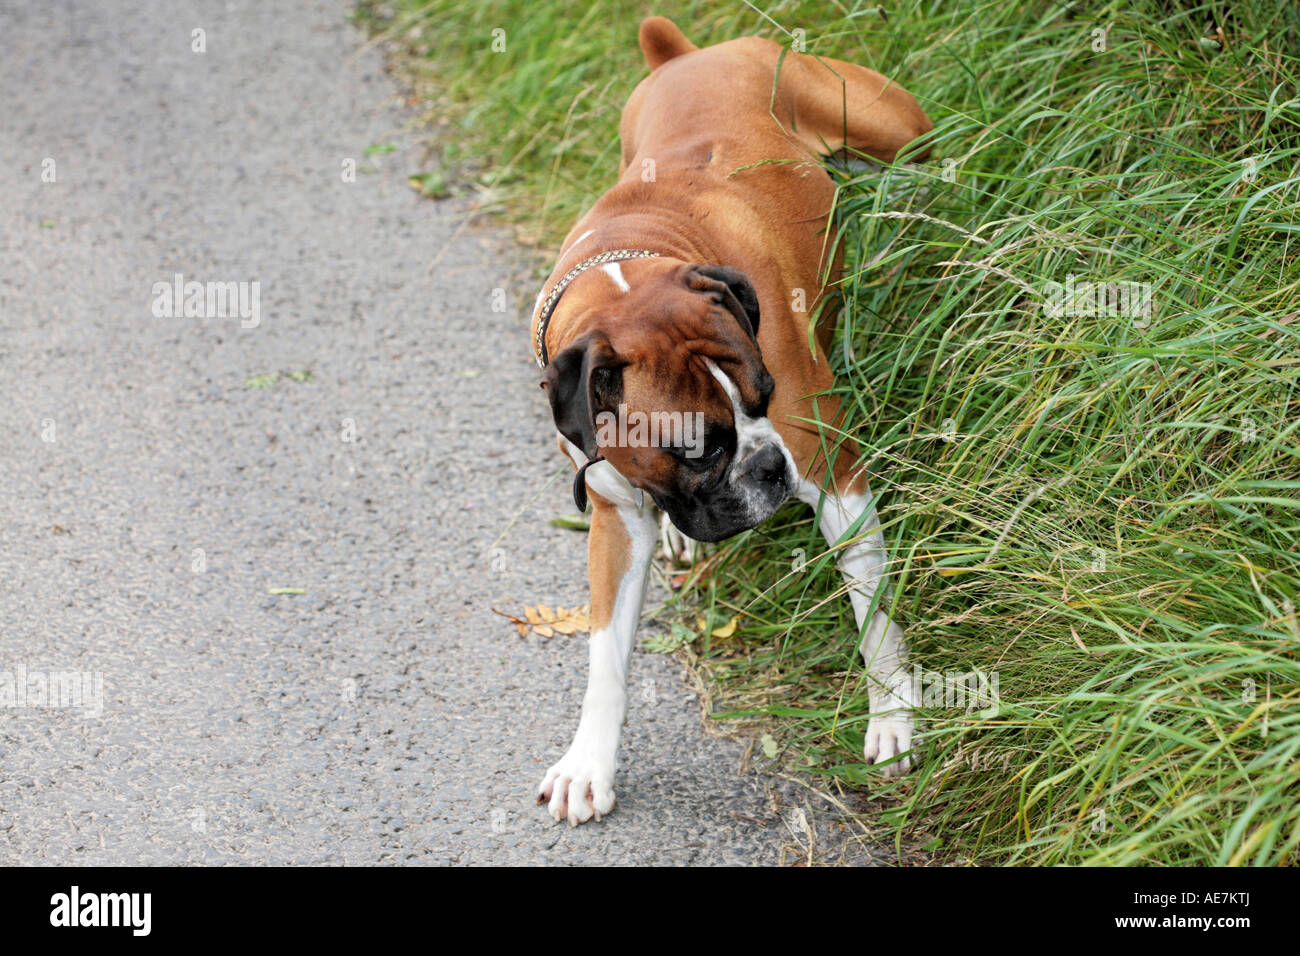 Boxer Dog having a pee